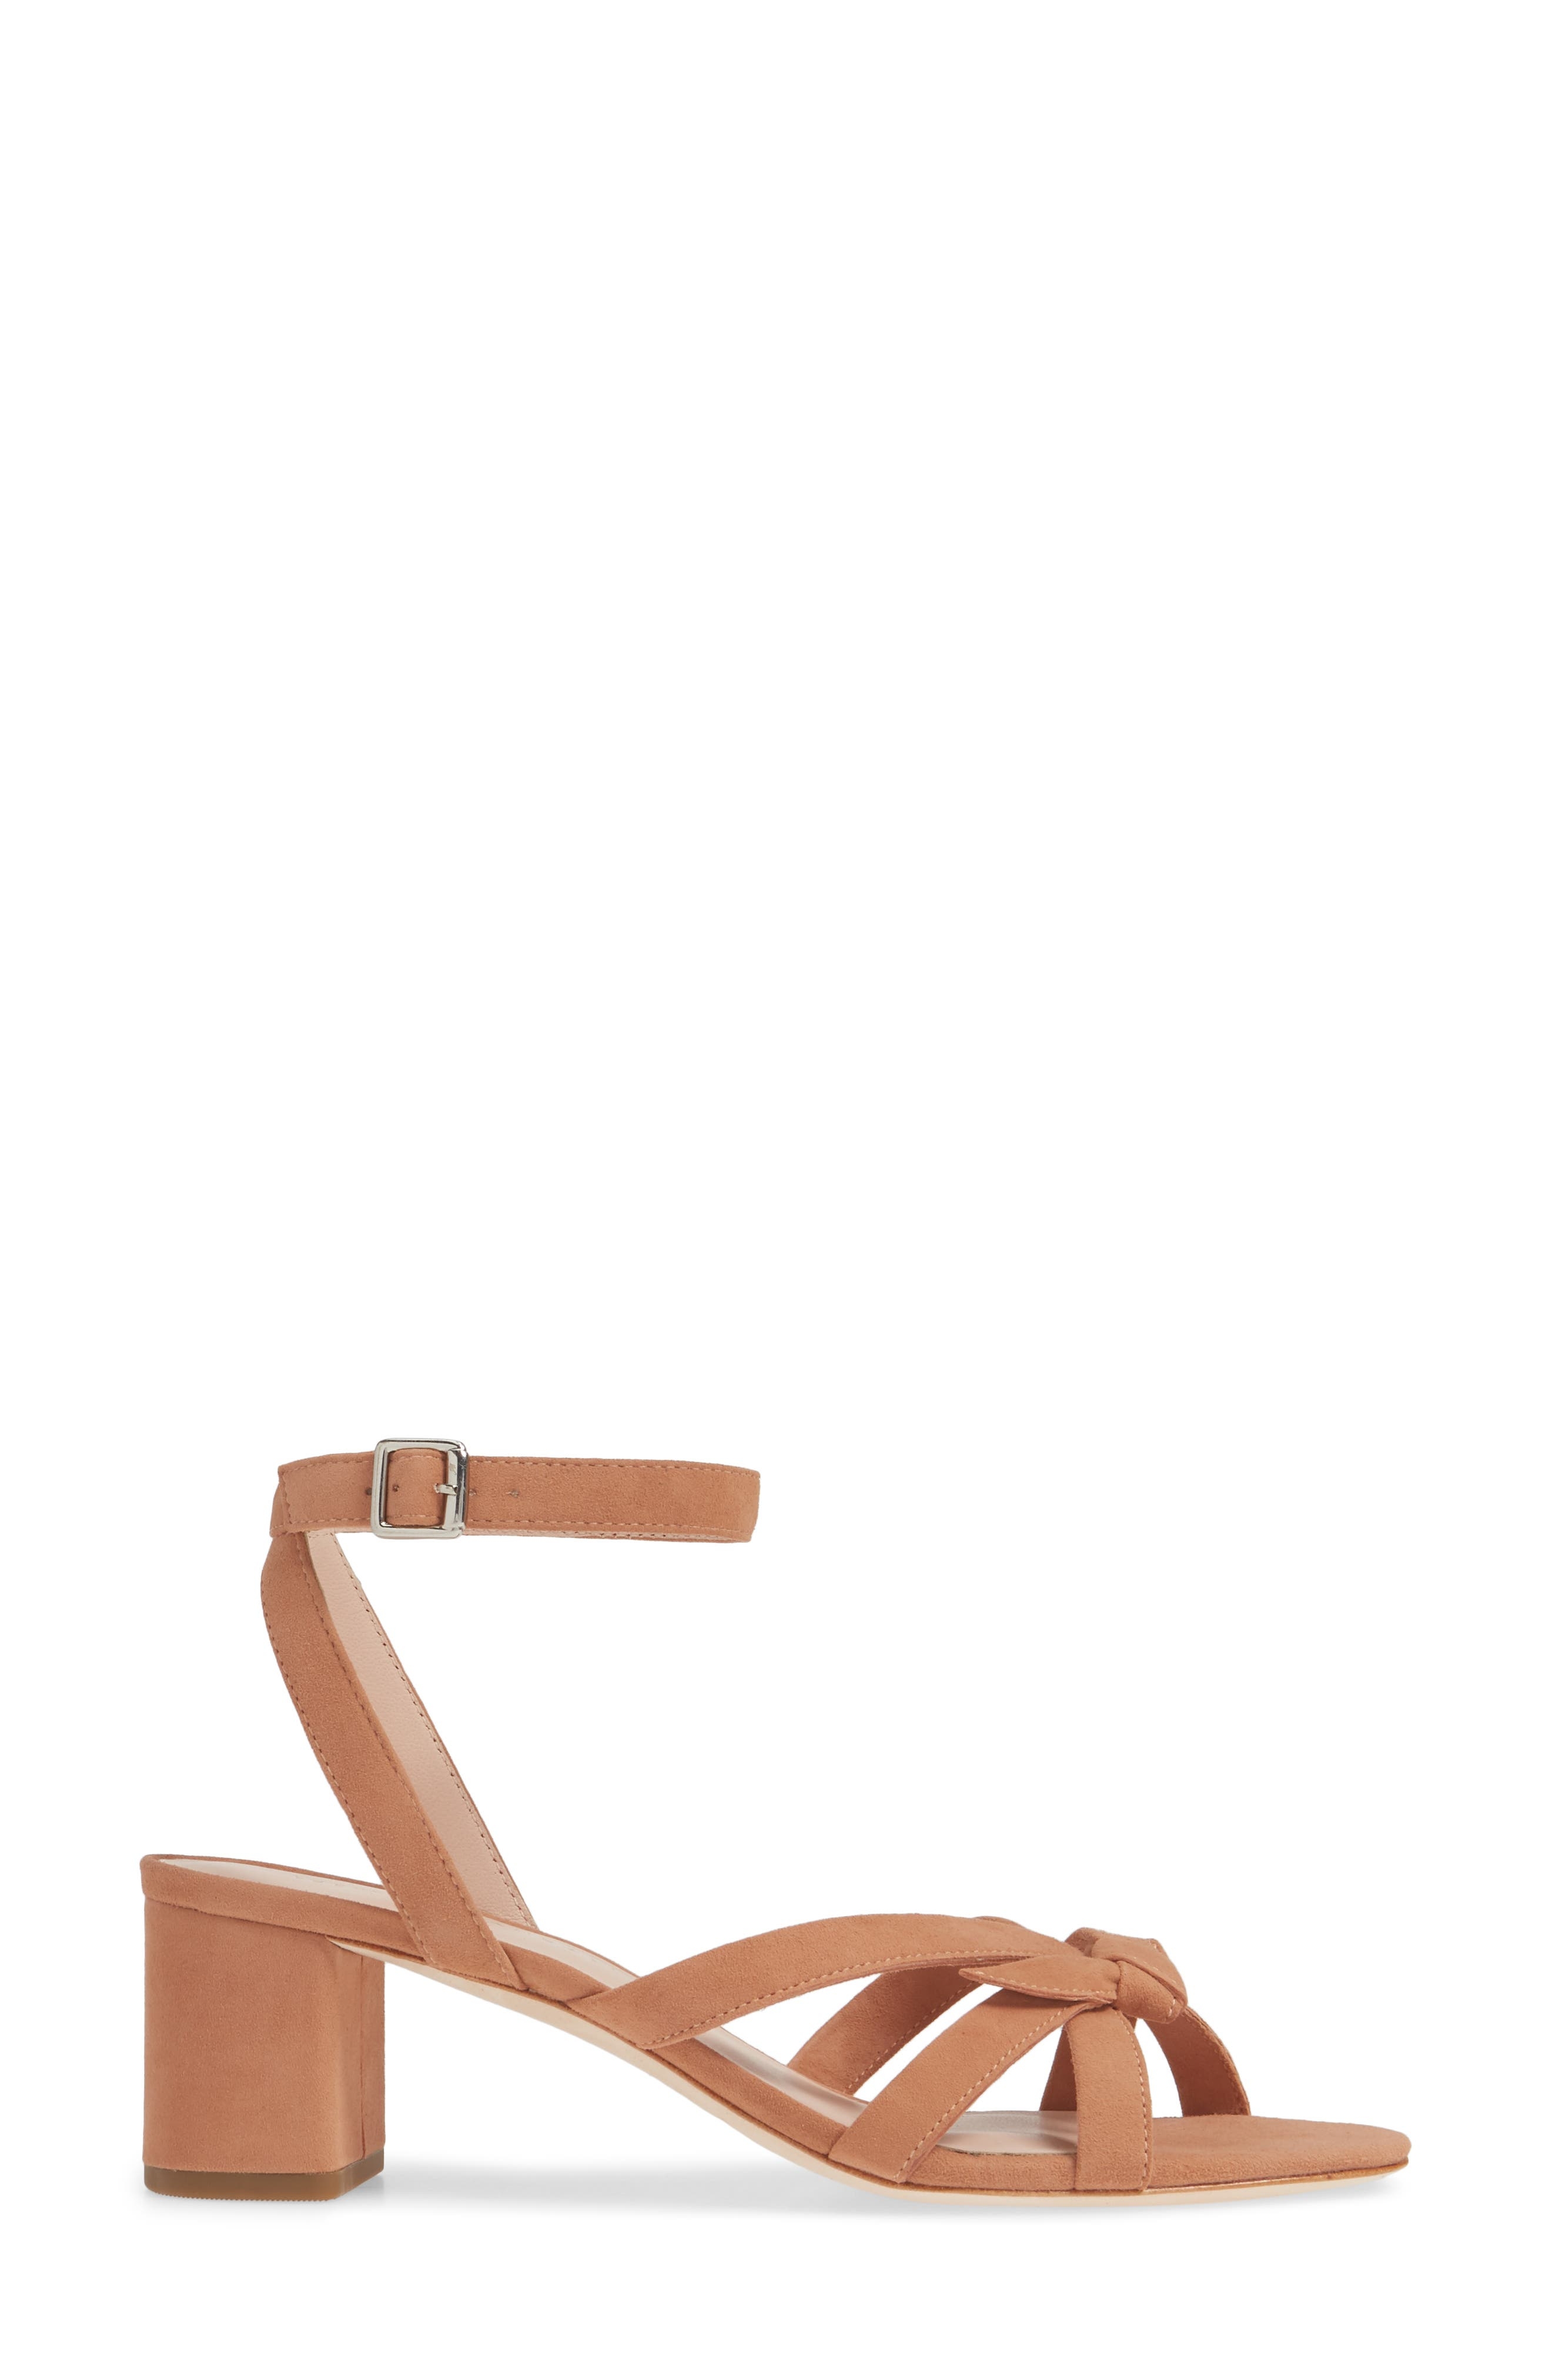 LOEFFLER RANDALL, Anny Knotted Sandal, Alternate thumbnail 3, color, COQUILLE